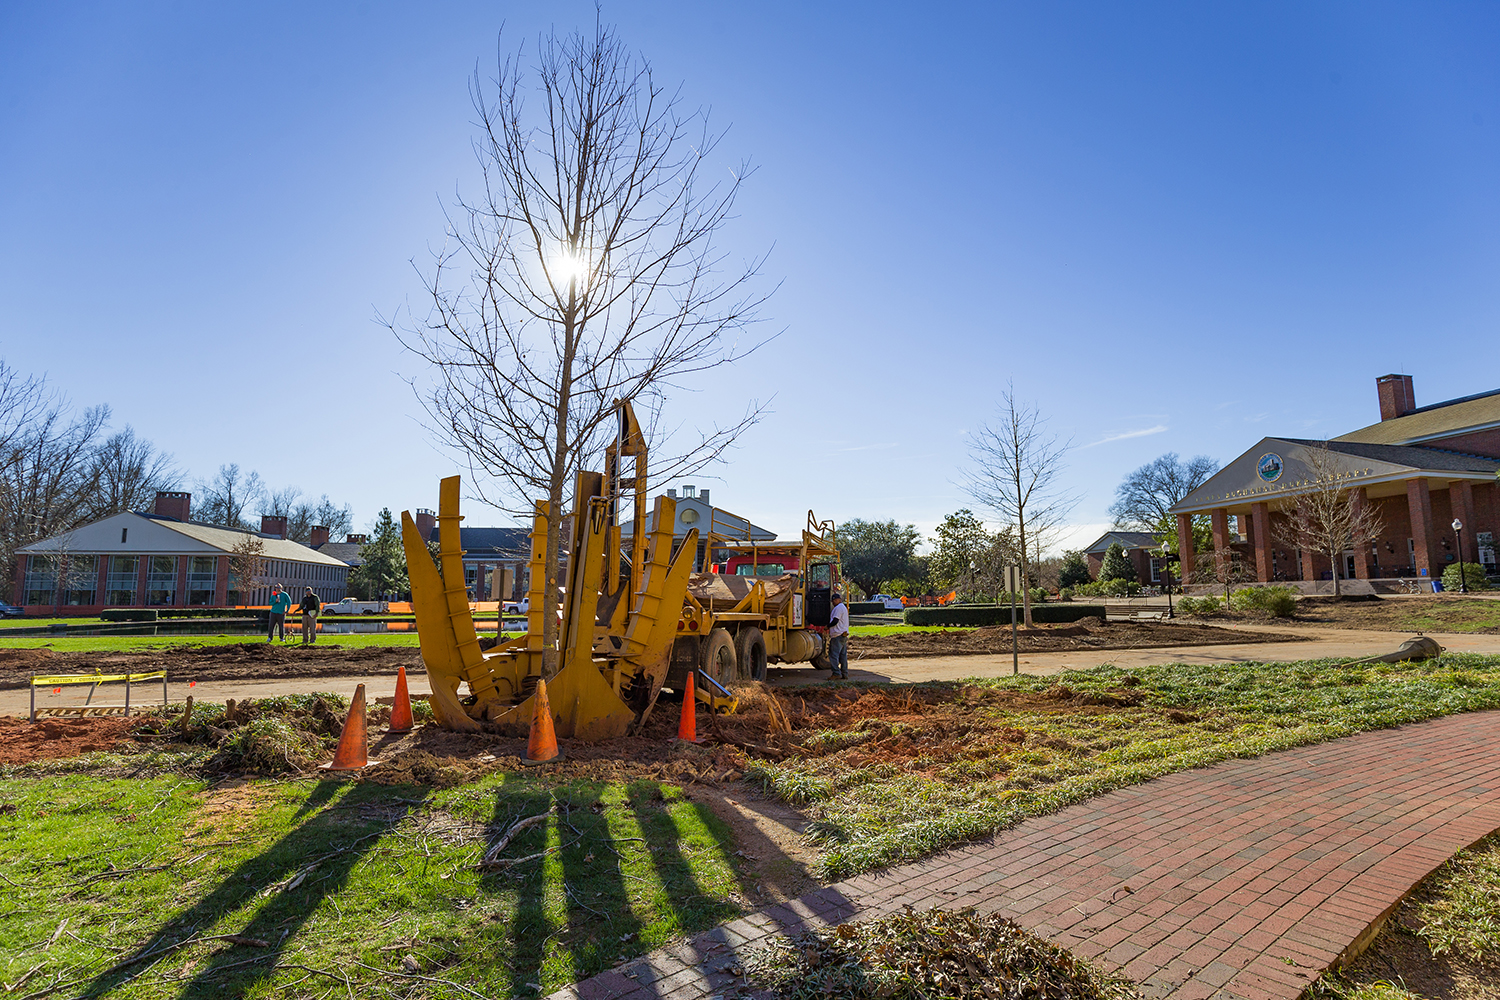 A large tree spade, a planting device like a backhoe, plants a young tree on a sunny day.